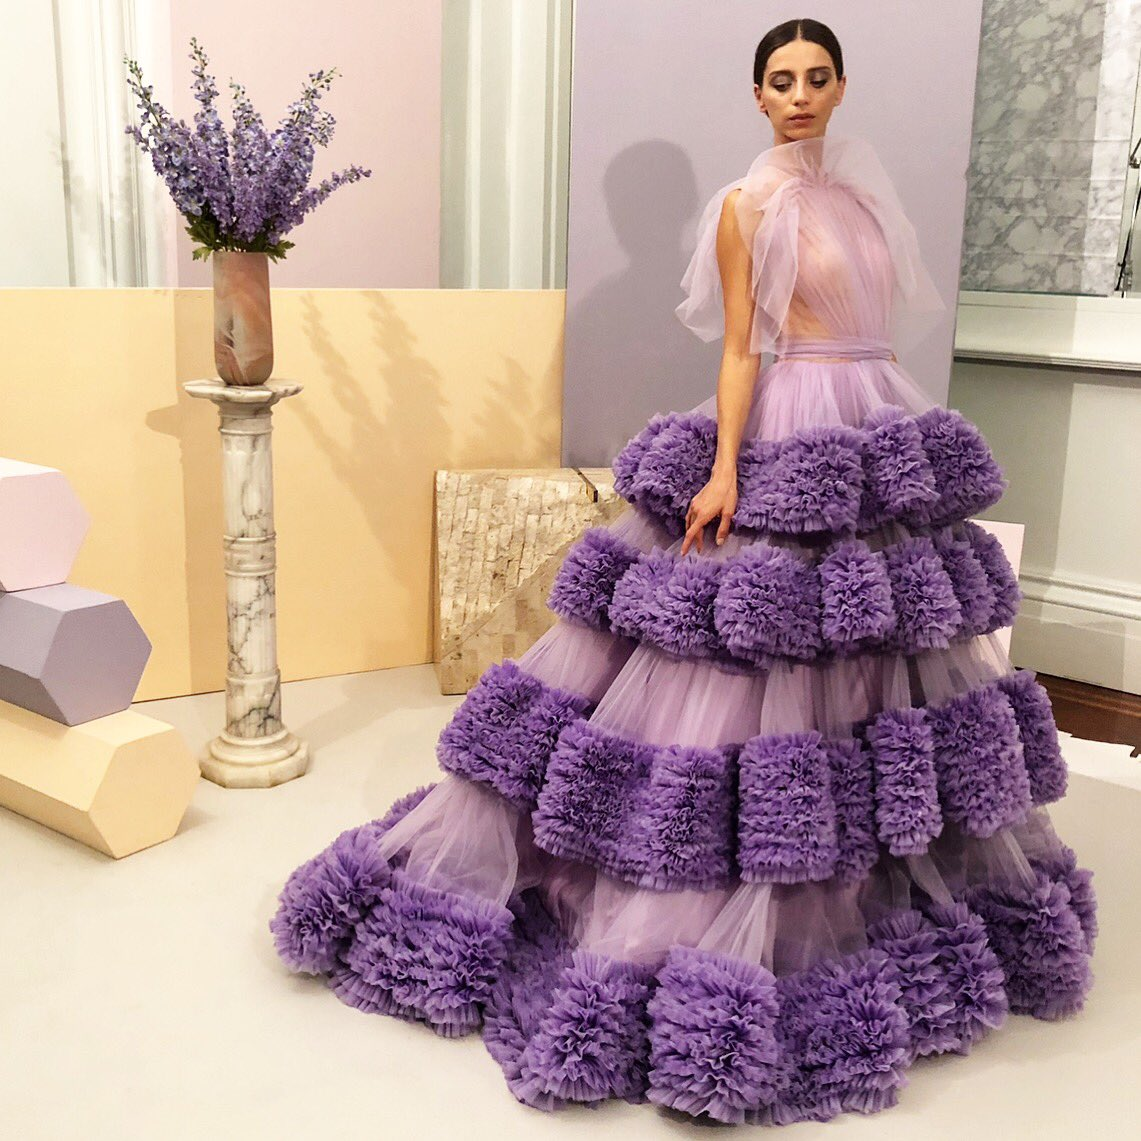 Thursday night dreaming of this! 💜 #prefall2019 @AngelaSarafyan #tbt